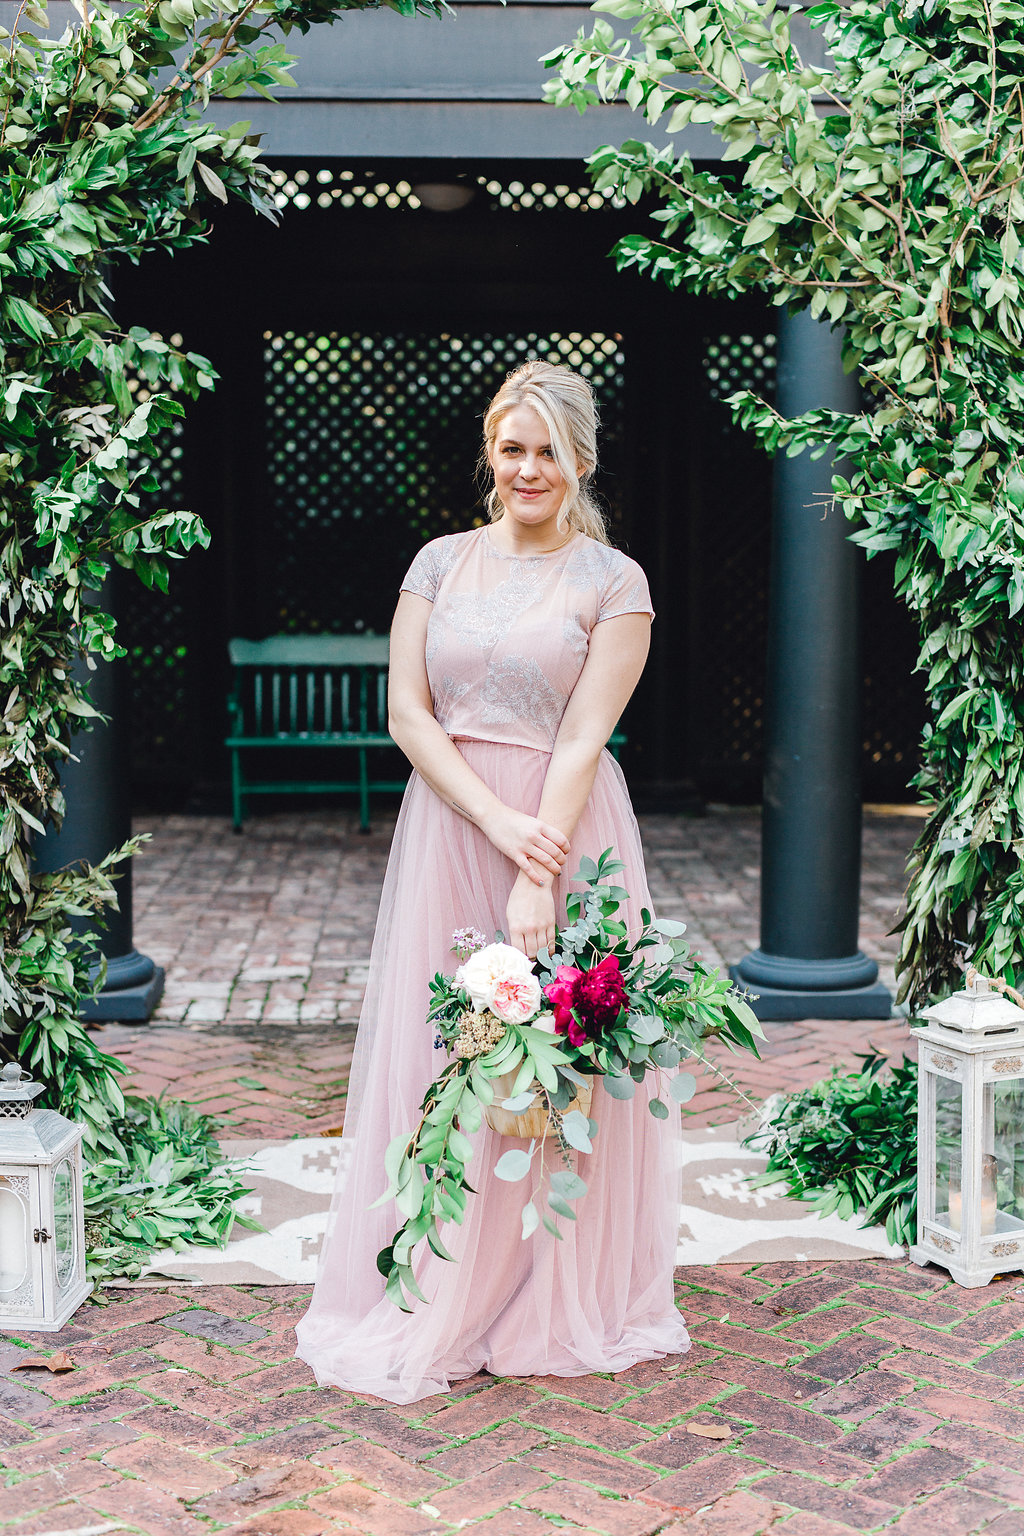 hayley-paige-occasions-bridesmaids-dresses-dusty-rose-bridesmaids-dresses-ships-of-the-sea-wedding-inspiration-savannah-bridal-boutique-savannah-bridesmaids-dresses-special-occasions-dresses.JPG